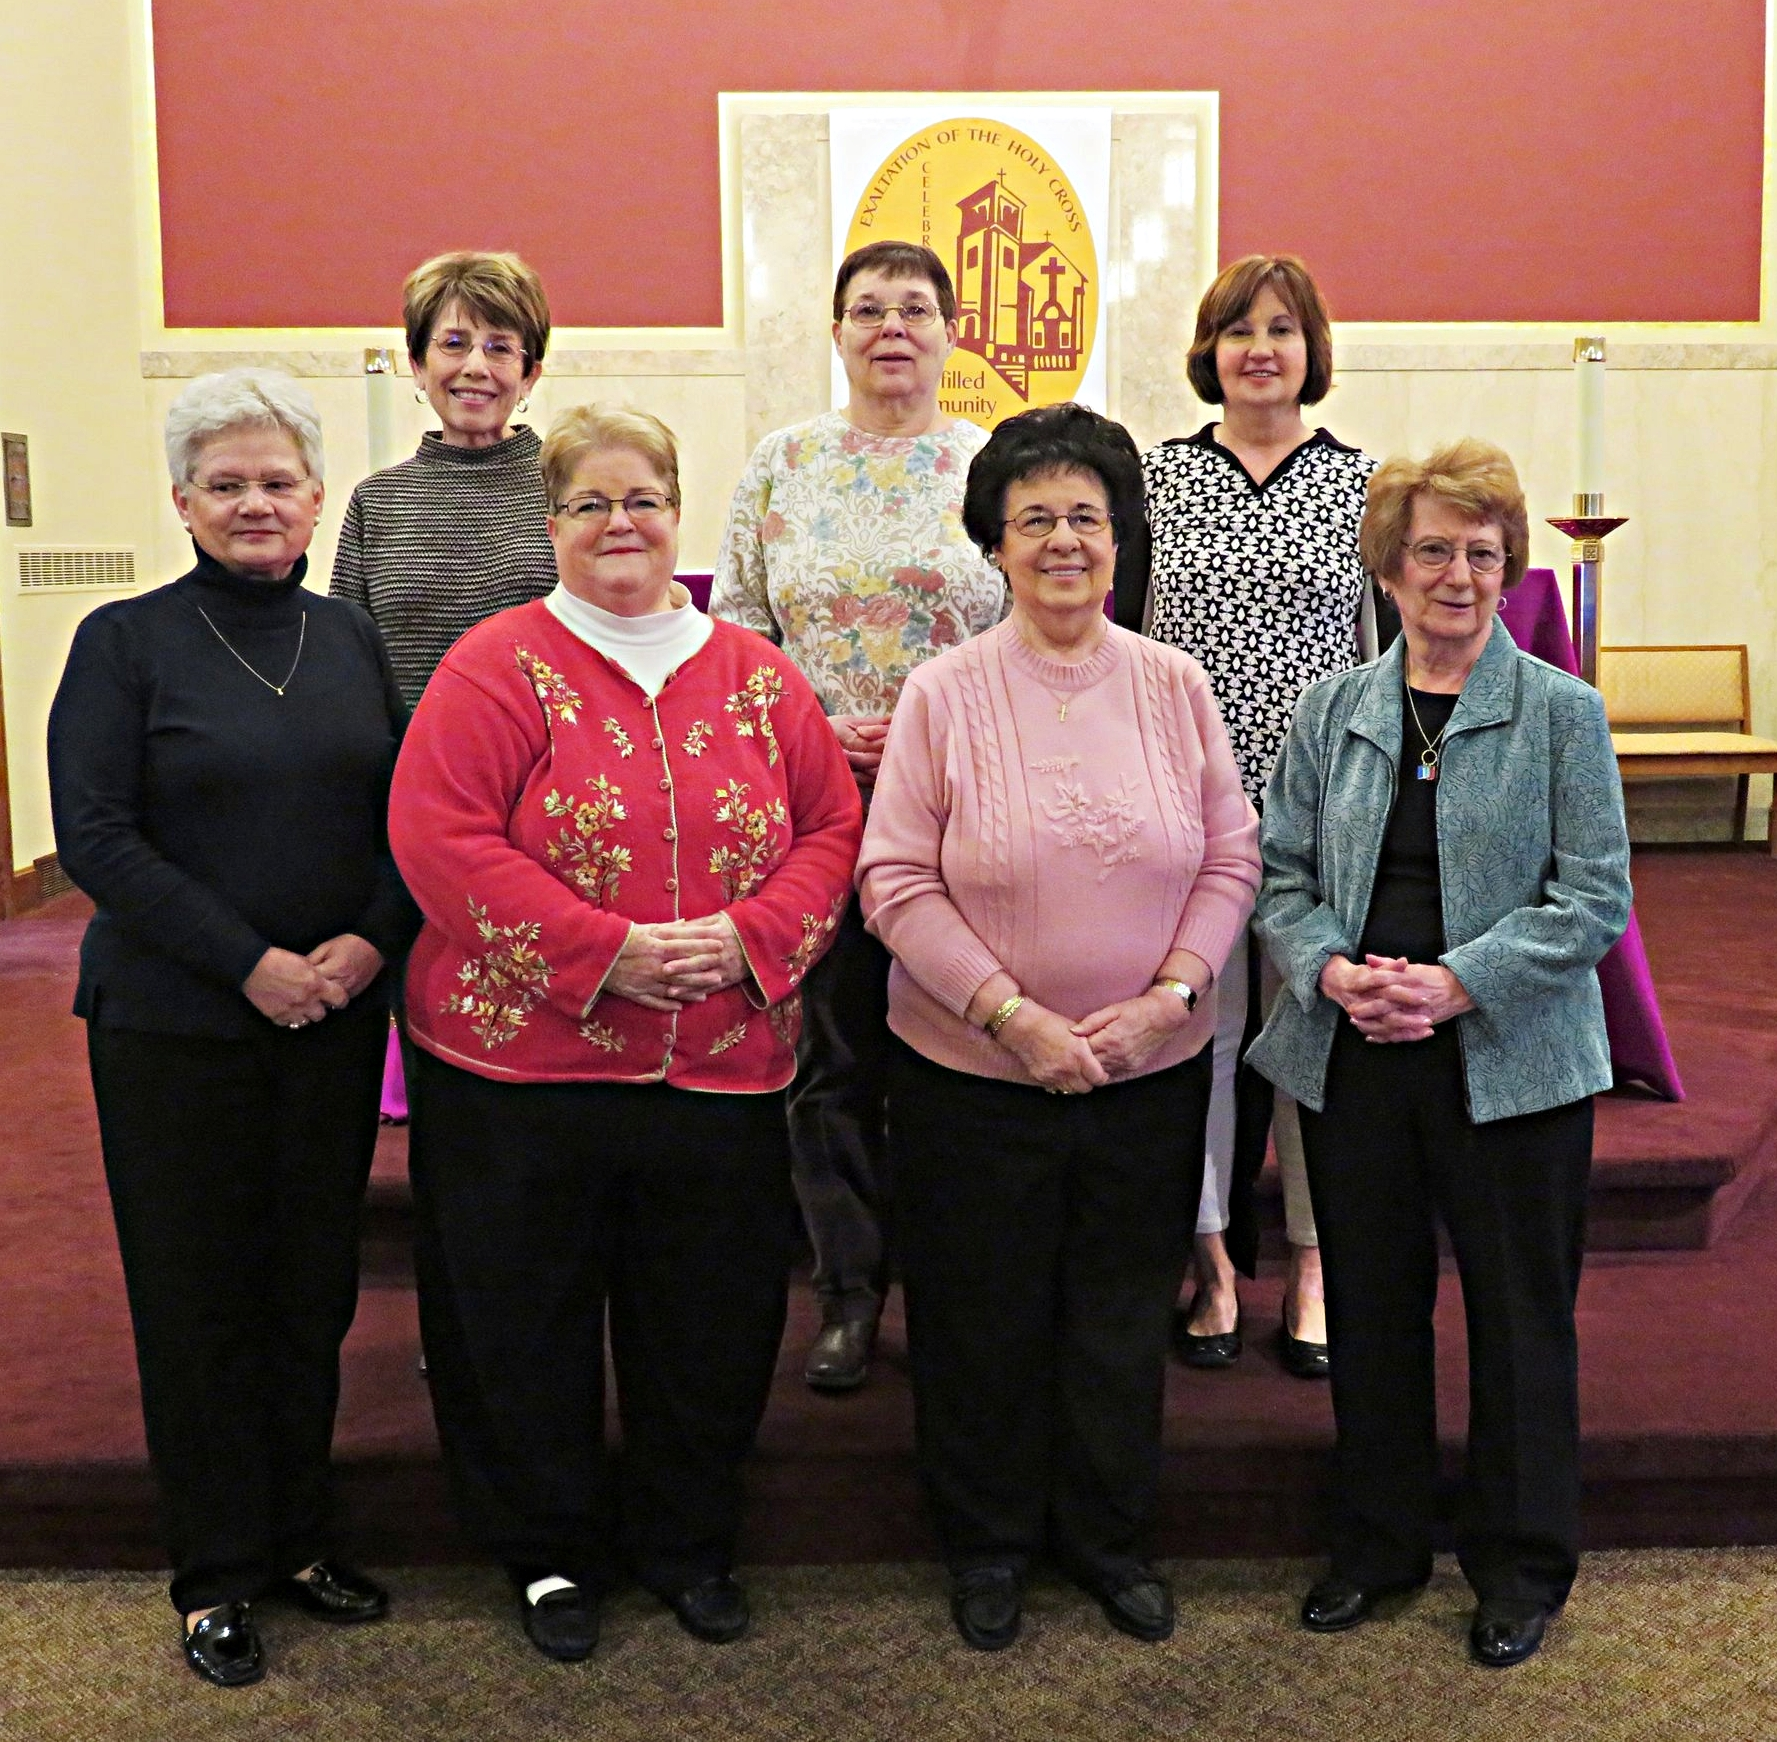 Prayer Group - A dedicated group of individuals pray daily for the intentions of those on the prayer list. To add someone to the list and/or to join the Prayer Group, please contact Diane Bogarowski at 570-823-6242.